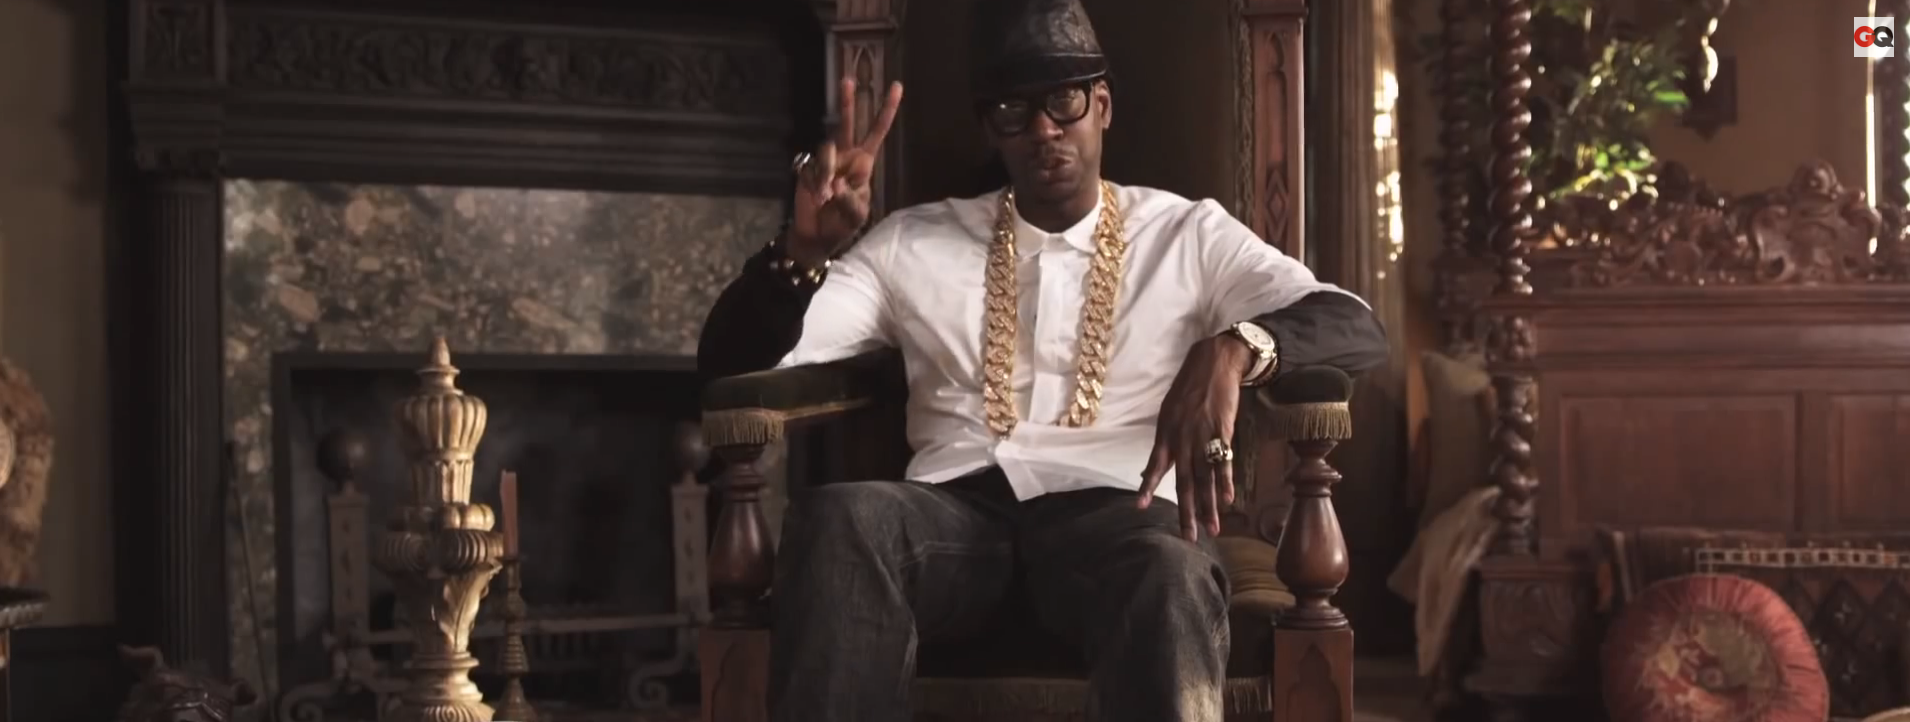 "GQ Web Series ""Most Expensivest Shit"" featuring 2 Chainz"